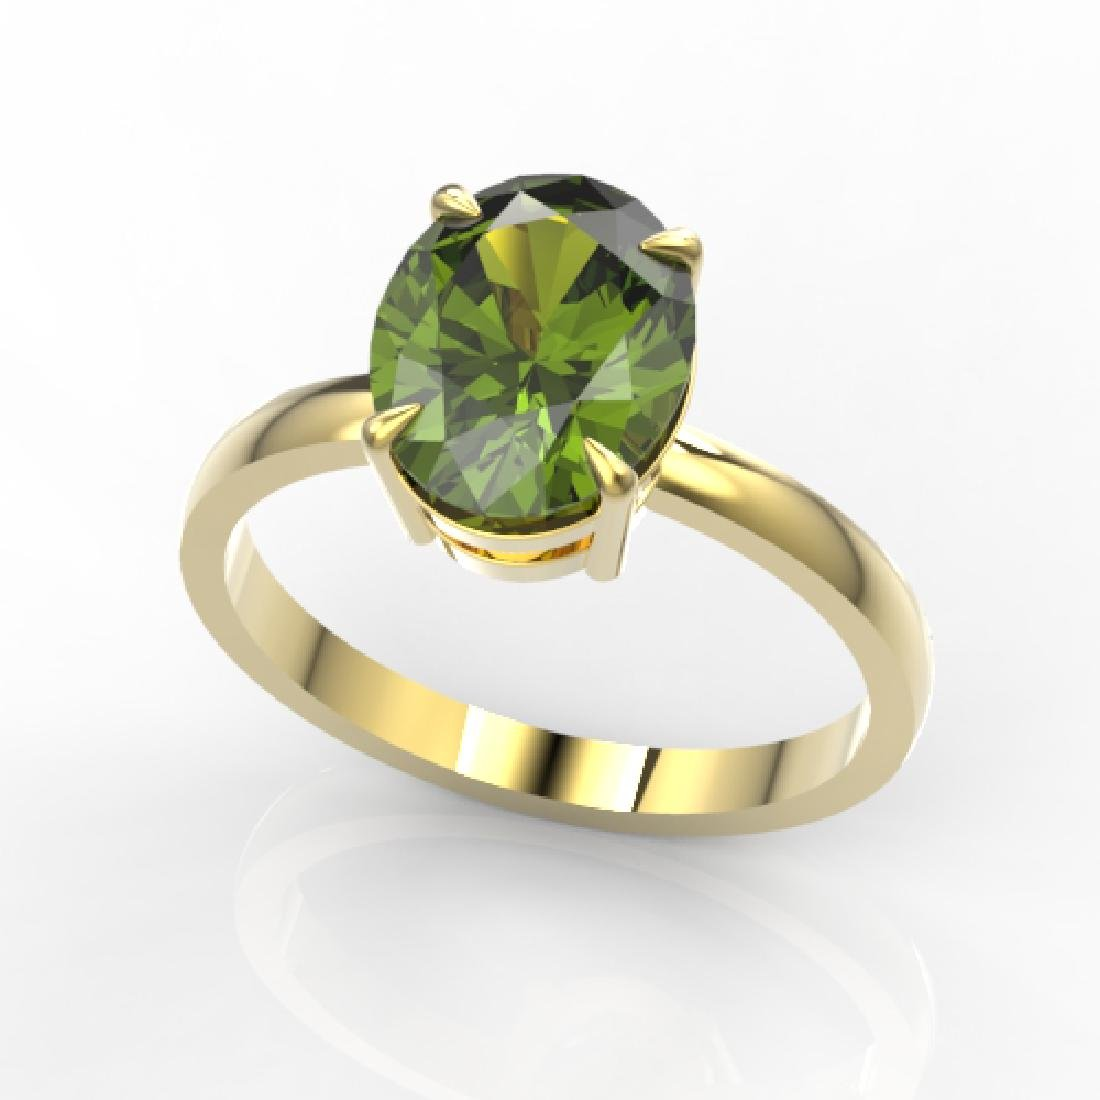 3 CTW Green Tourmaline Designer Inspired Solitaire Ring - 2